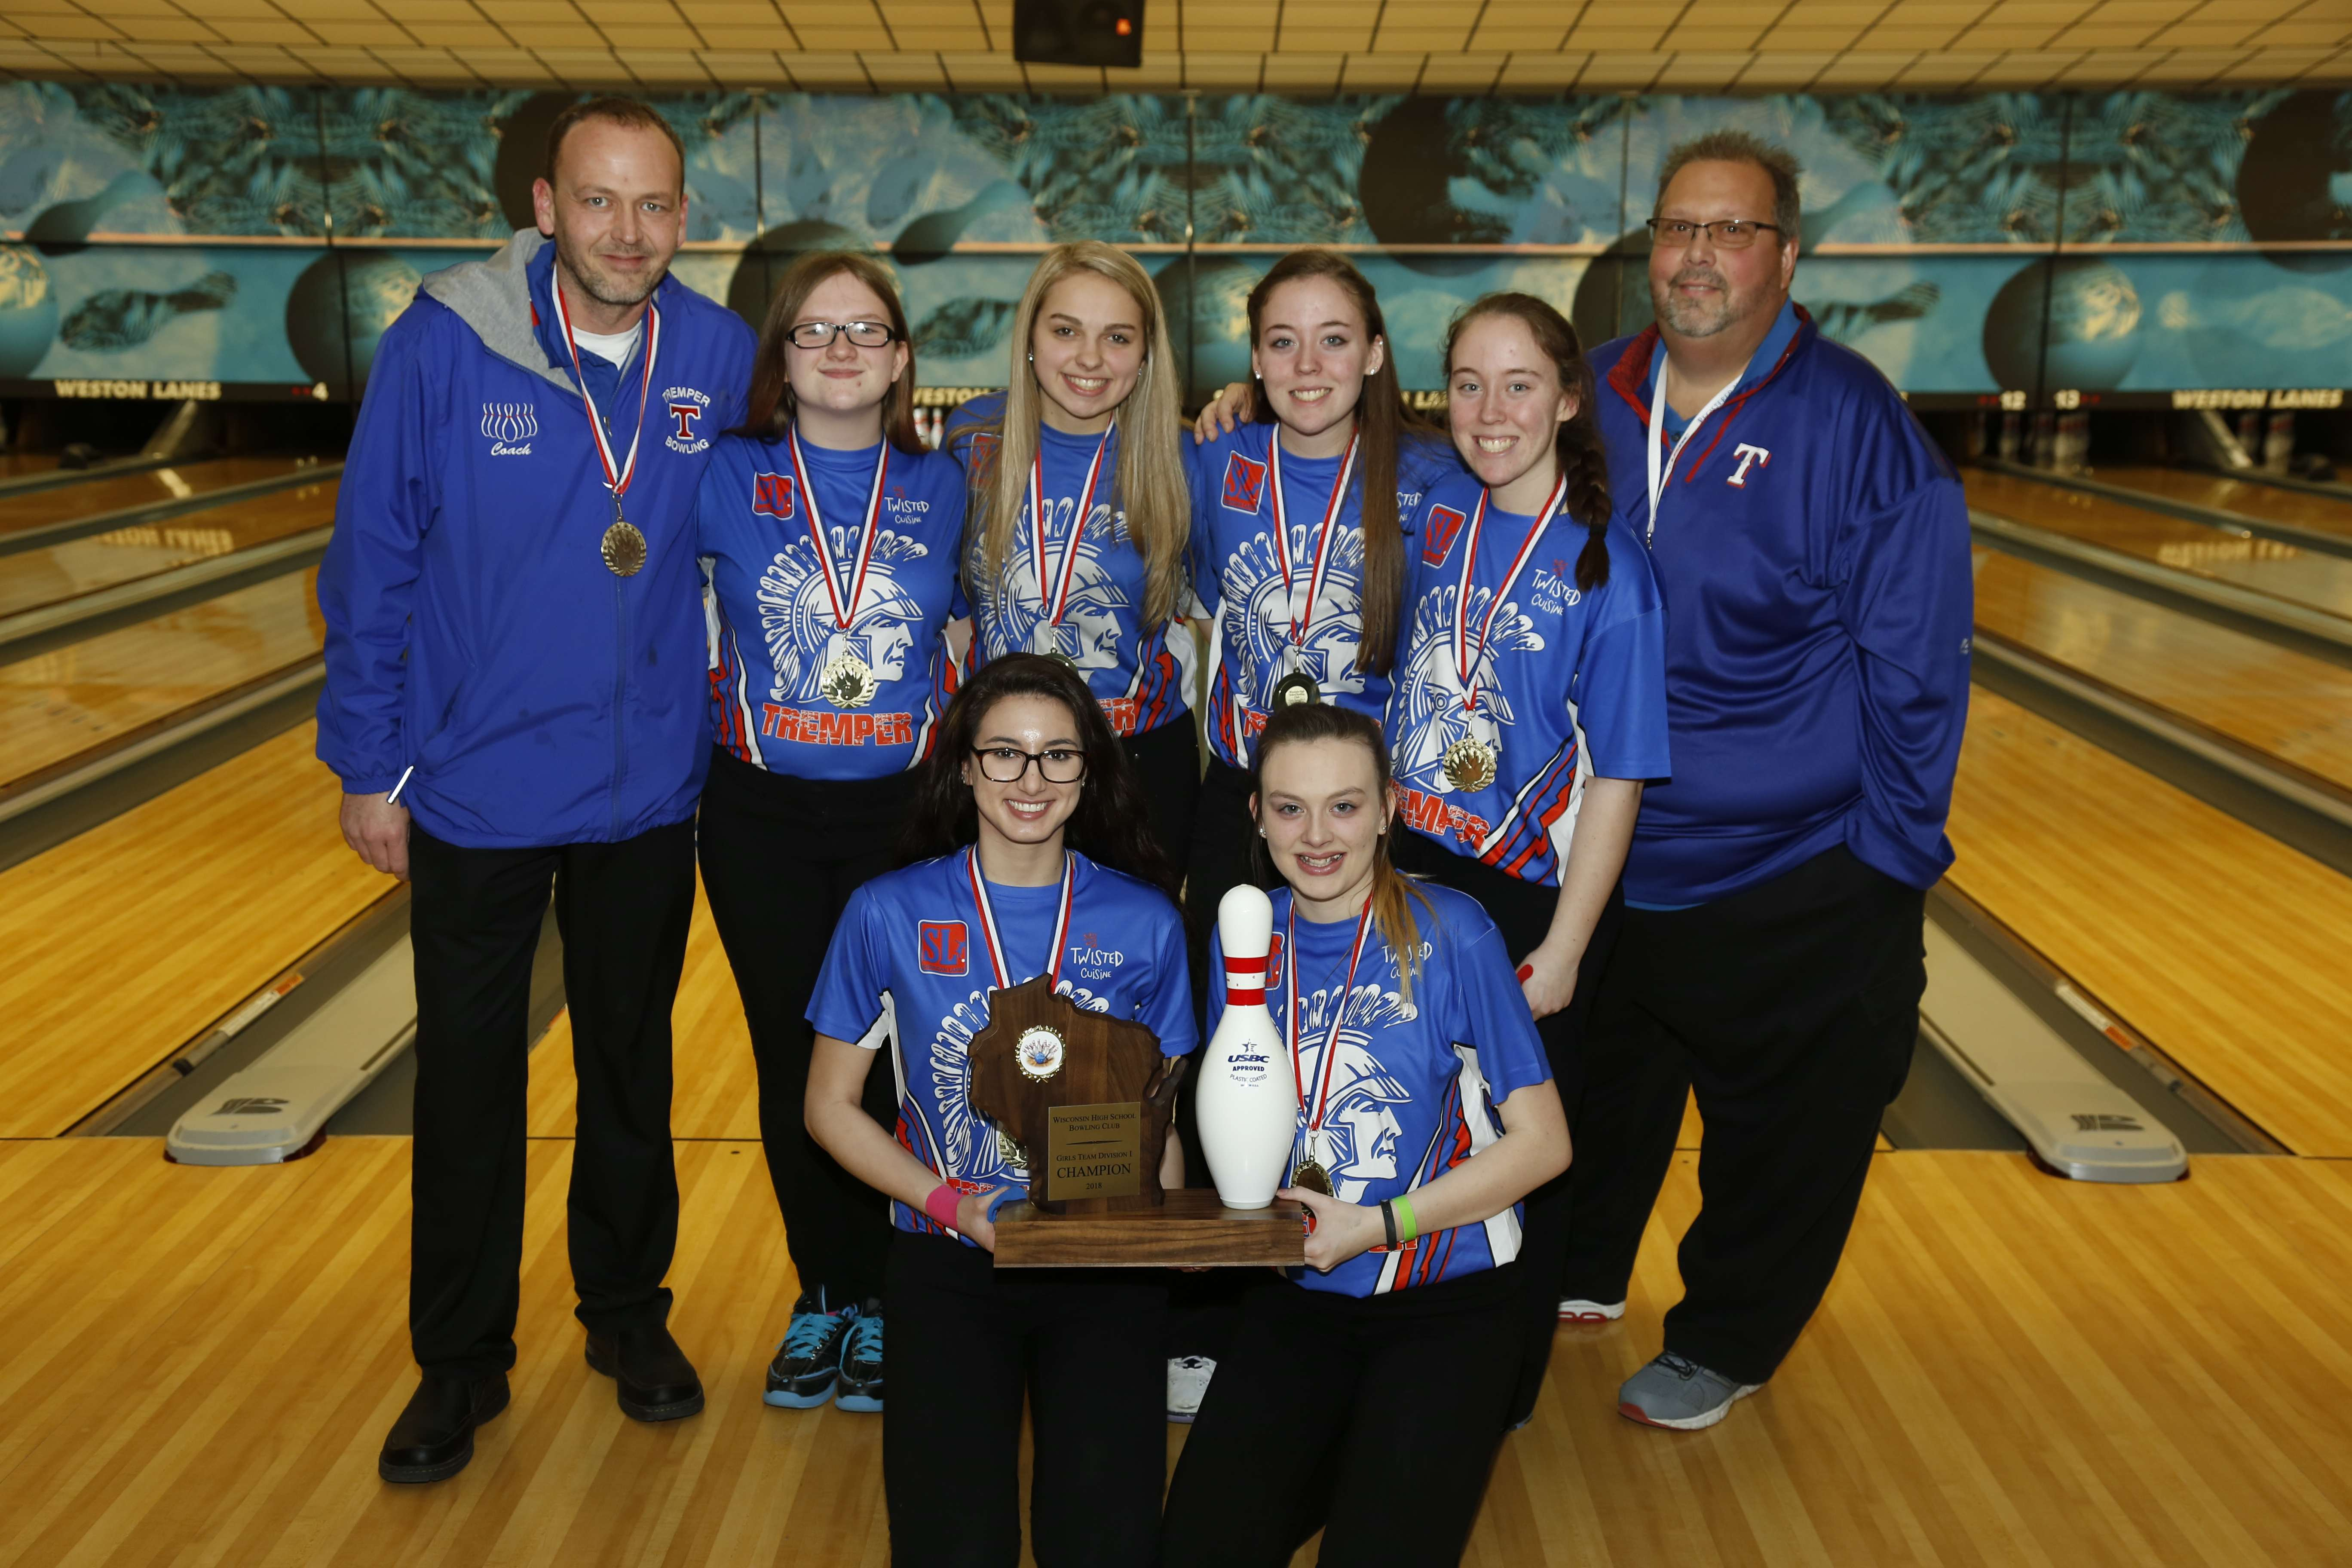 2018 Wi Hsbc State Championships Results Bowling Centers Association Of Wisconsin